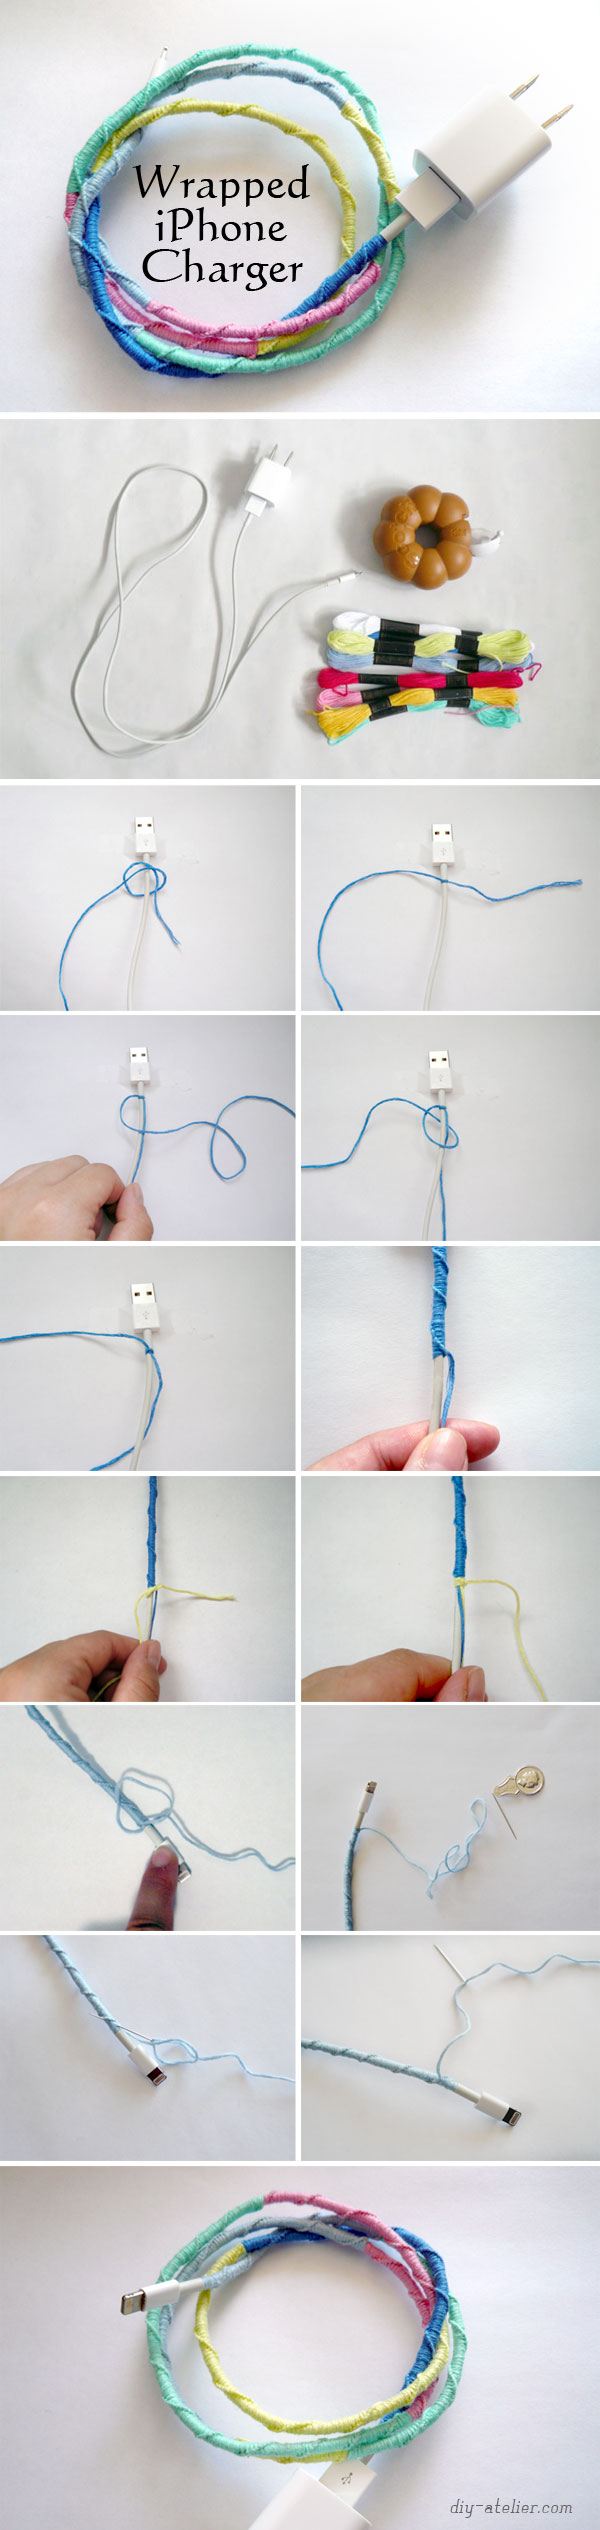 wrapped_iphone_charger00